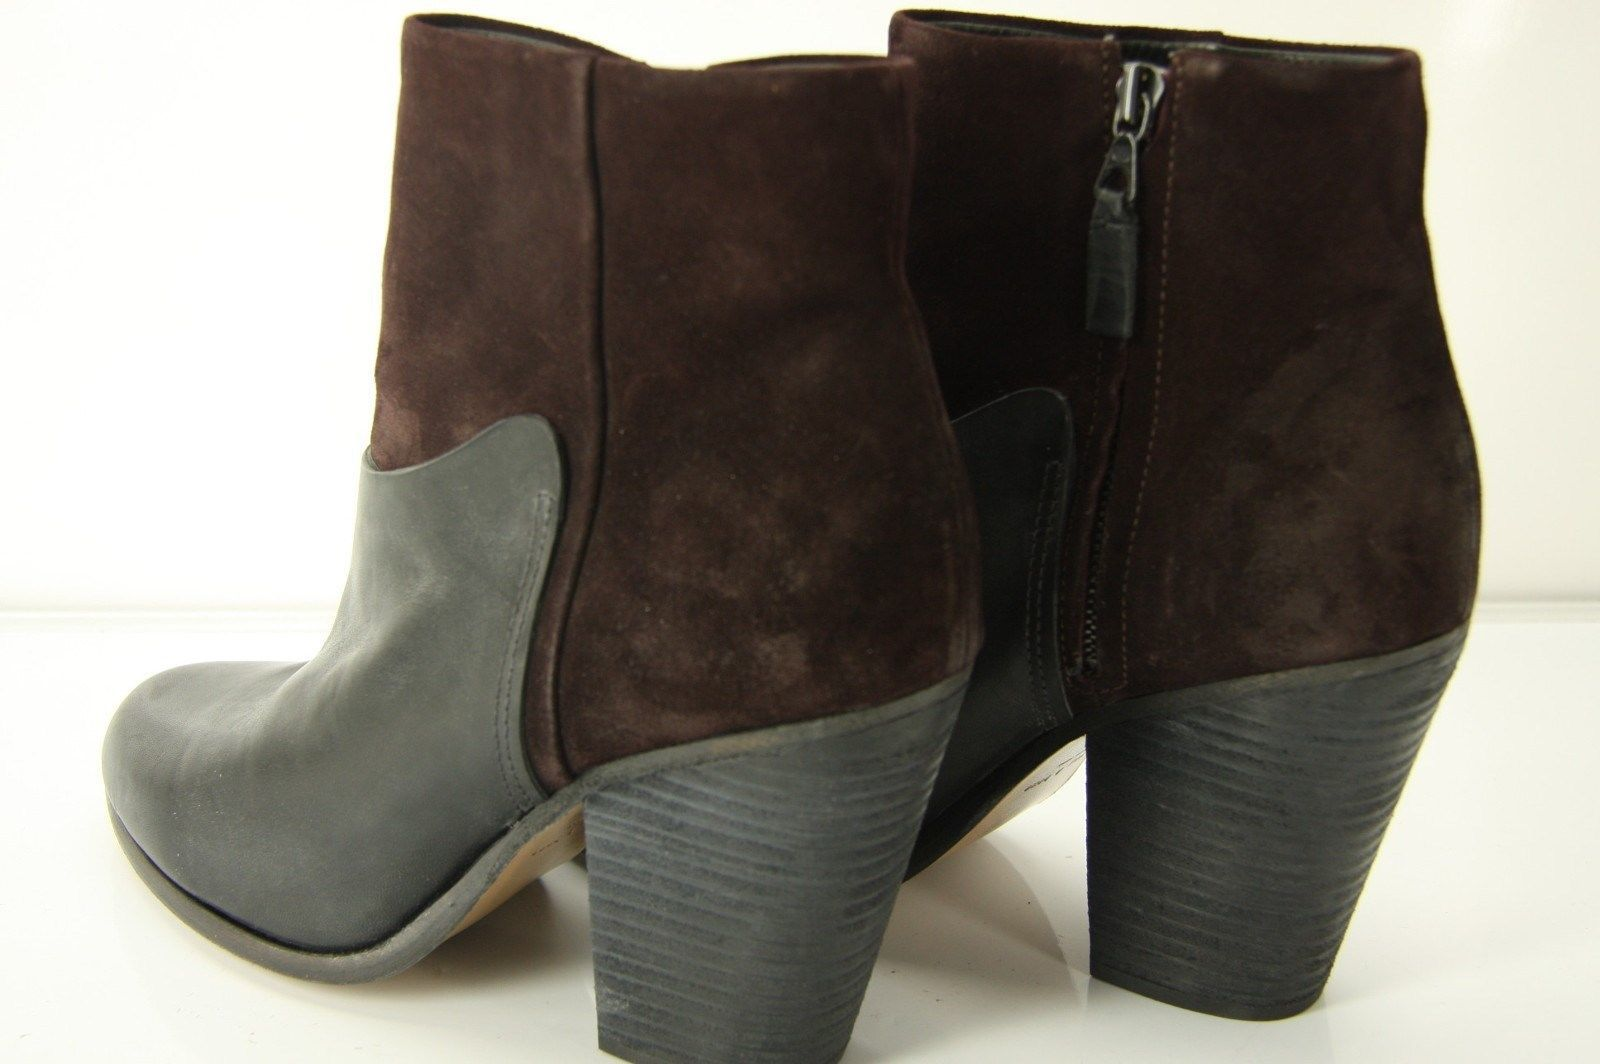 Rag & Bone Kendall Suede Leather Block Heel Ankle Boots size 40 10 NIB $550